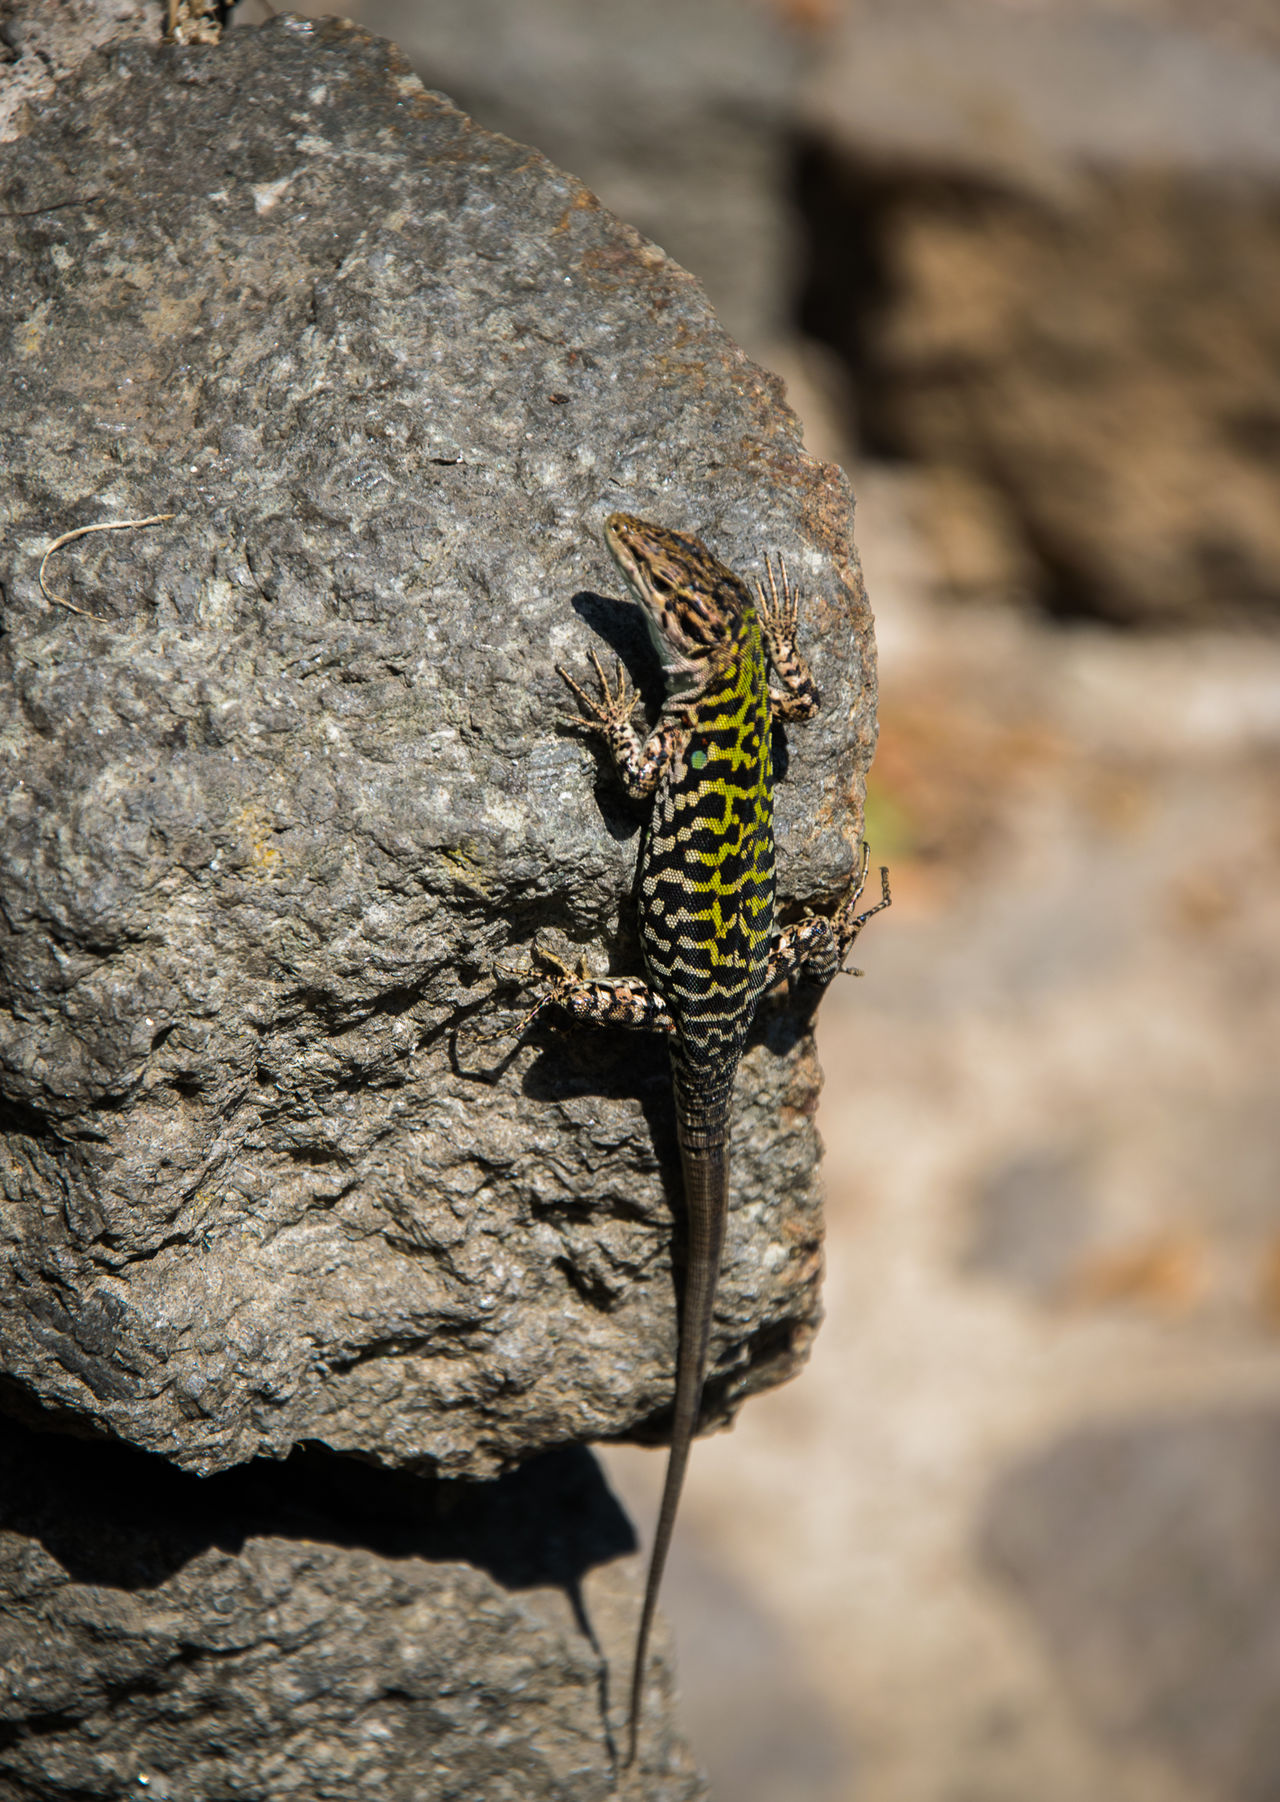 Animal Themes Animal Wildlife Animals In The Wild Close-up Focus On Foreground Gecko Green Color High Angle View Lizard Close Up Lizard Green Lizard Nature Nature One Animal Reptiles